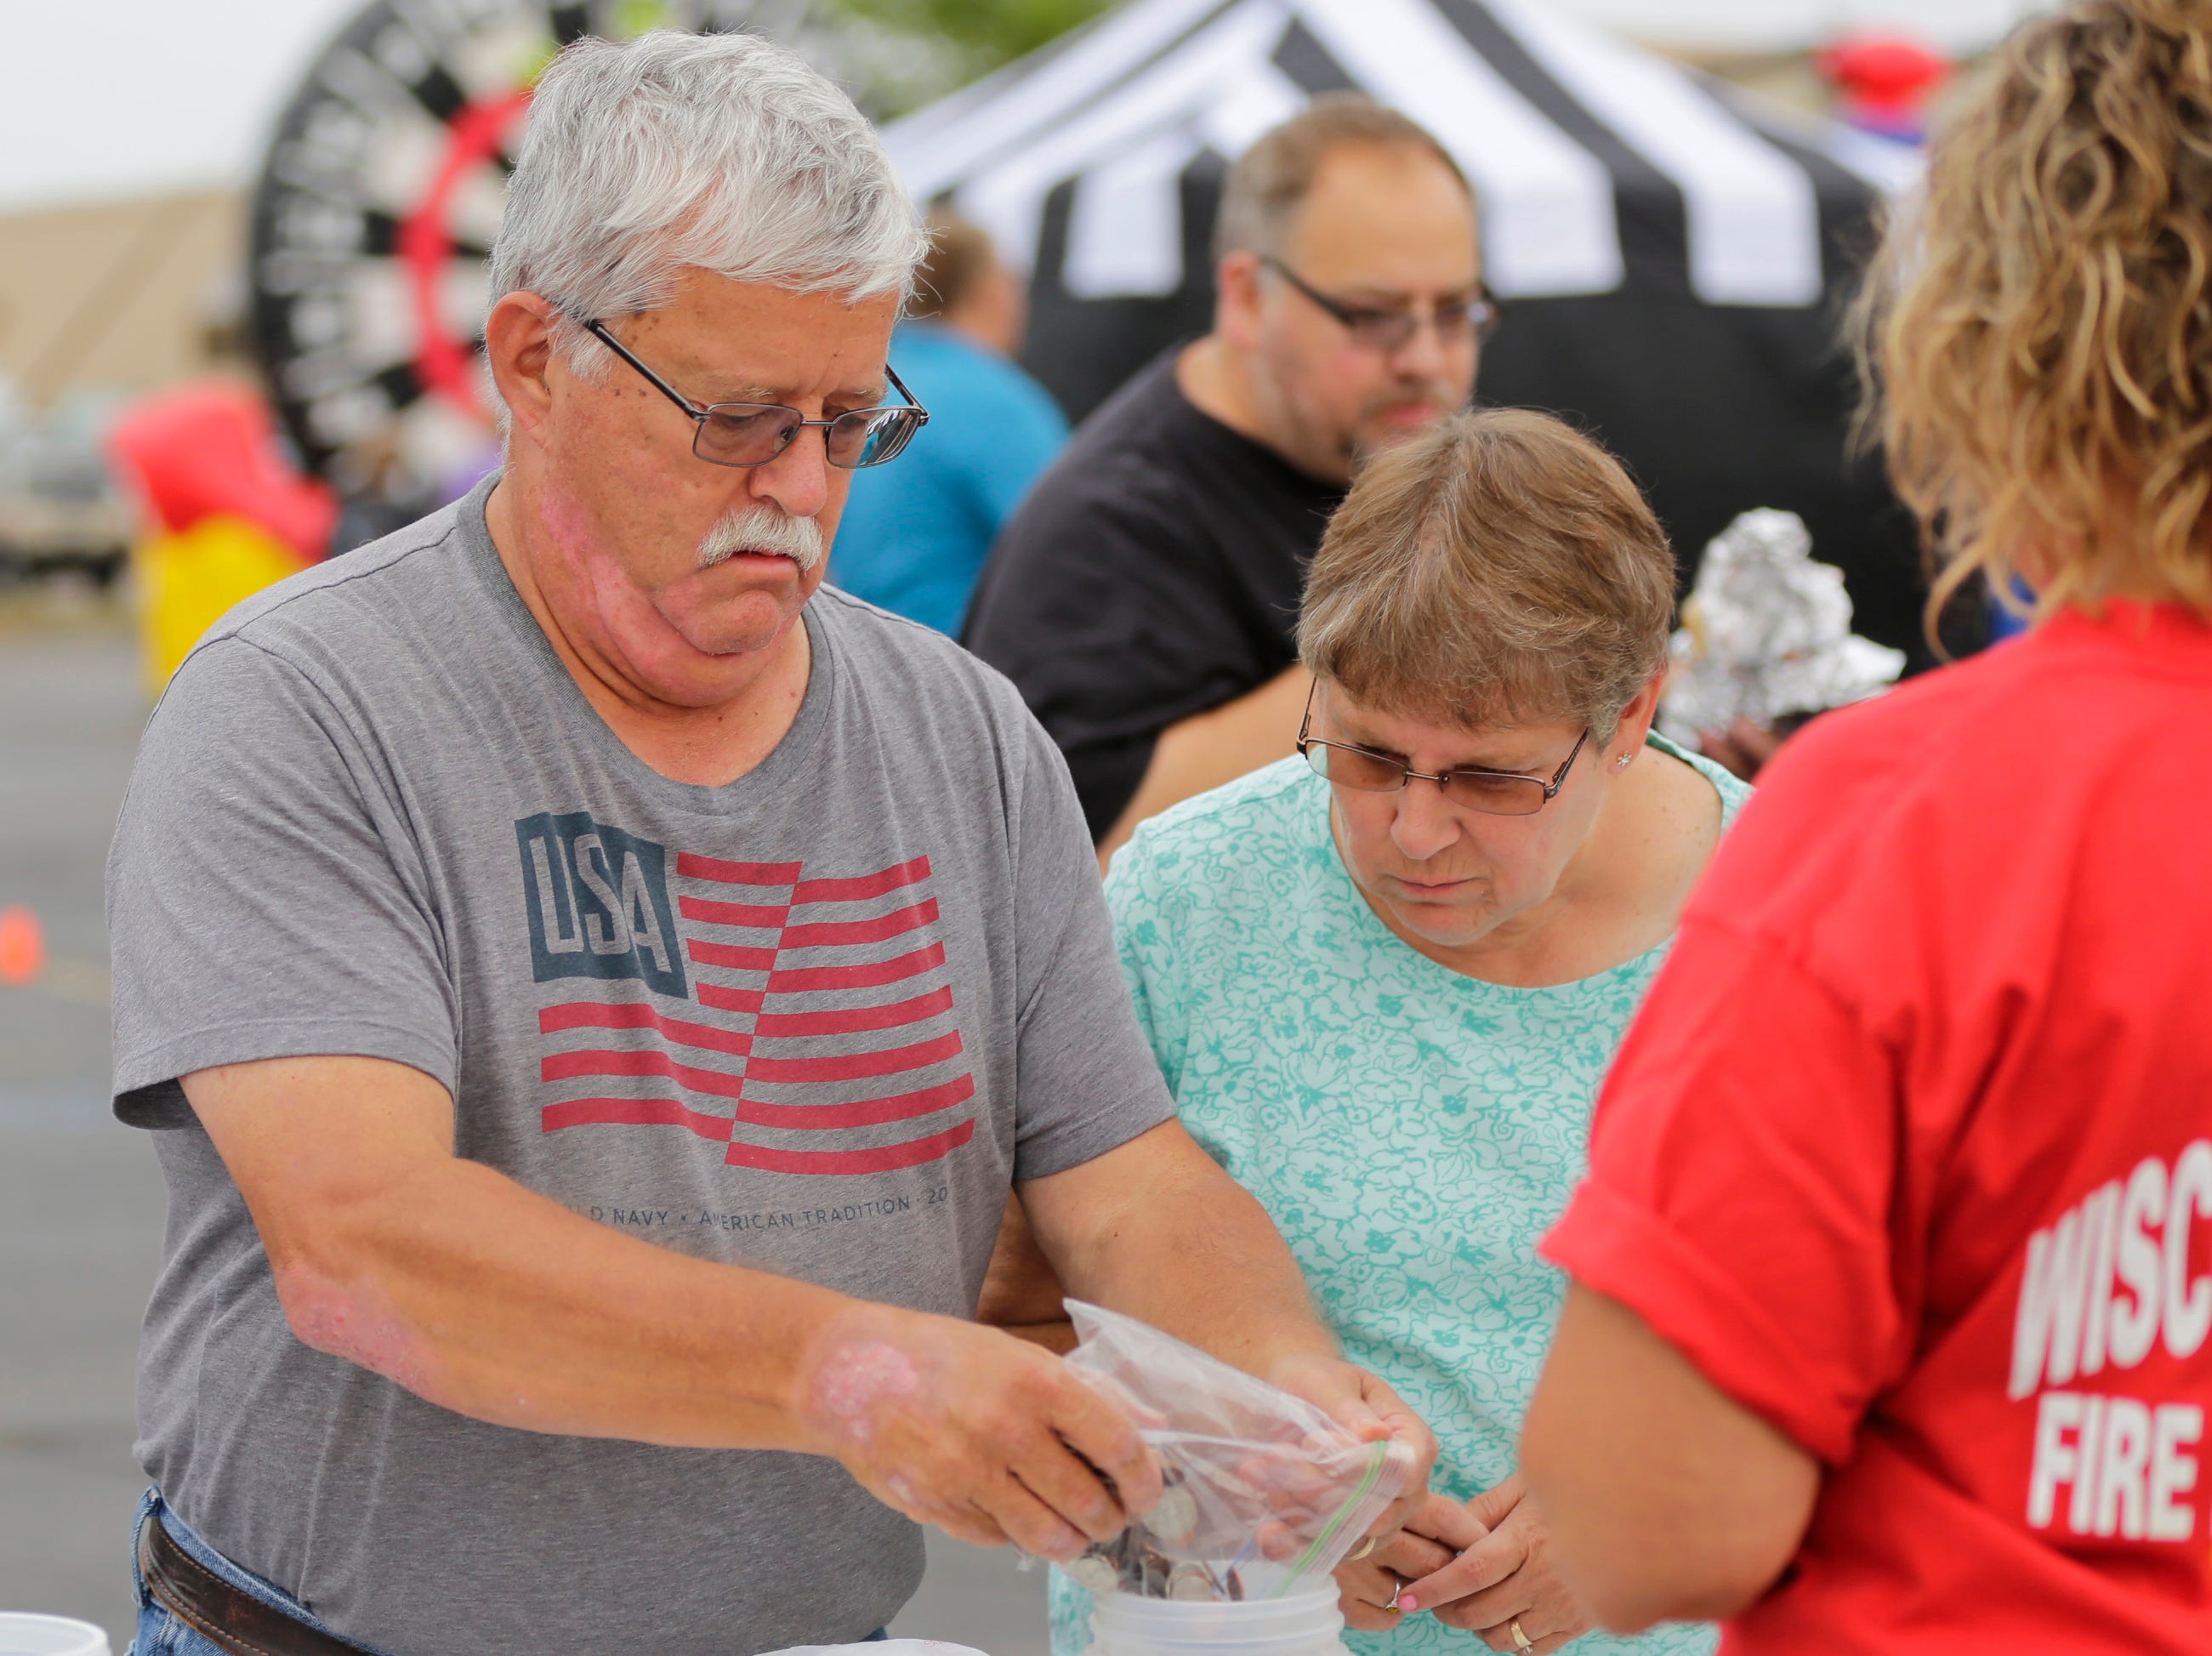 Paul Jeltema donates his change to the penny war during the National Night Out event put on by the Wisconsin Rapids Police Department in the Crossview Church parking lot in Wisconsin Rapids Tuesday, August 7, 2018. Participants in the penny war chose to place their change in a container for the Wisconsin Rapids Police Department, Wisconsin Rapids Fire Department and Wood County Sheriff's Department, raising money for the Fly High Memorial Playground.